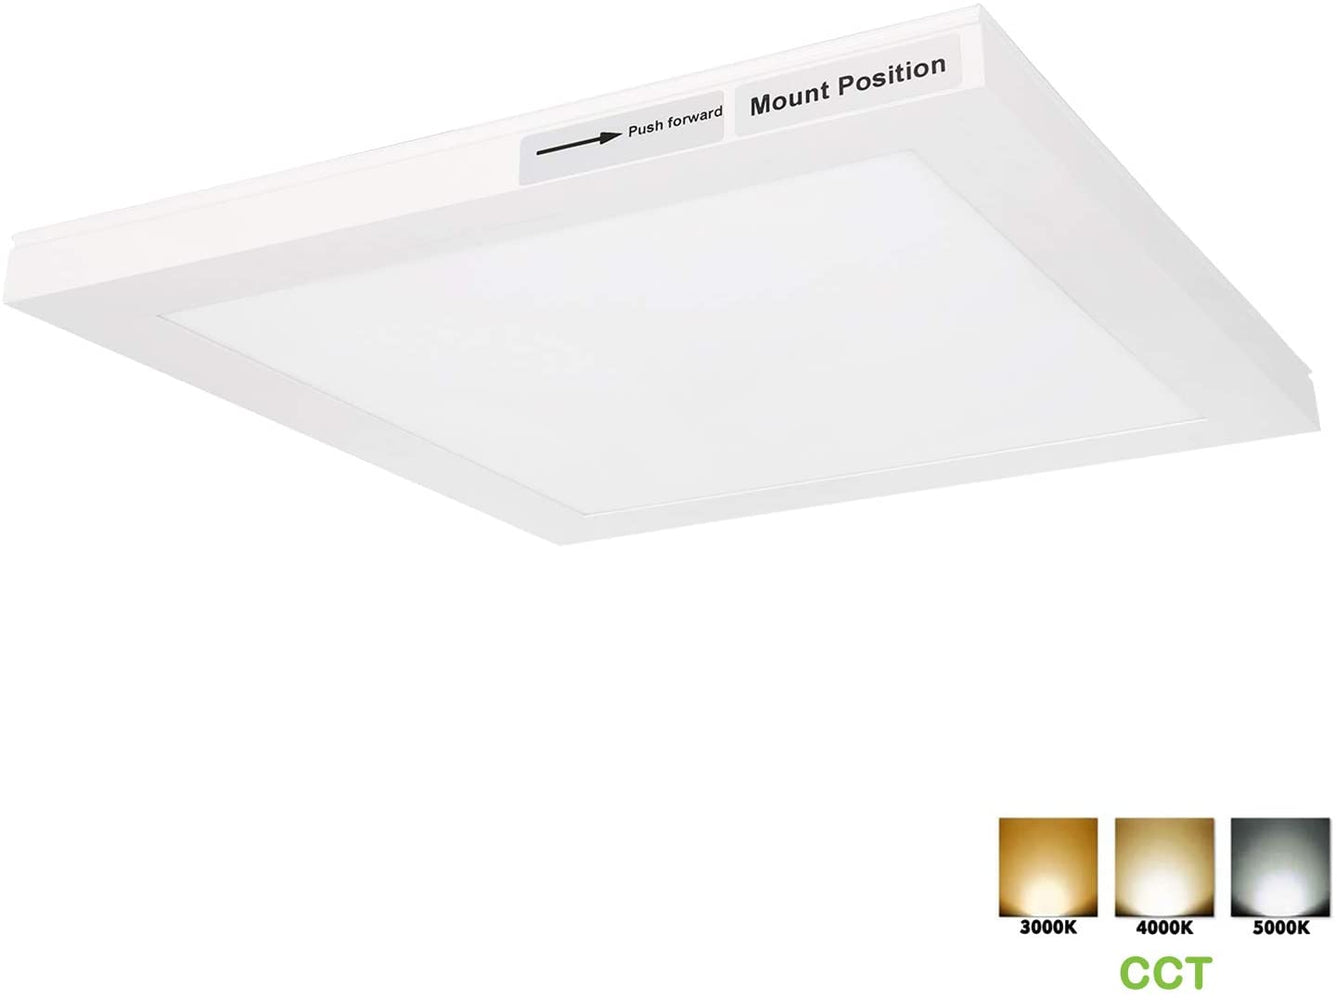 Hykolity 1x1 FT LED Flat Panel Flush Mount Light, 12W Ultra Slim Edge-Lit Ceiling Light Fixtures, 3/4/5K CCT 1200lm, Built-in Driver Surface Mount Light for Kitchen Garage Basement, ETL Listed